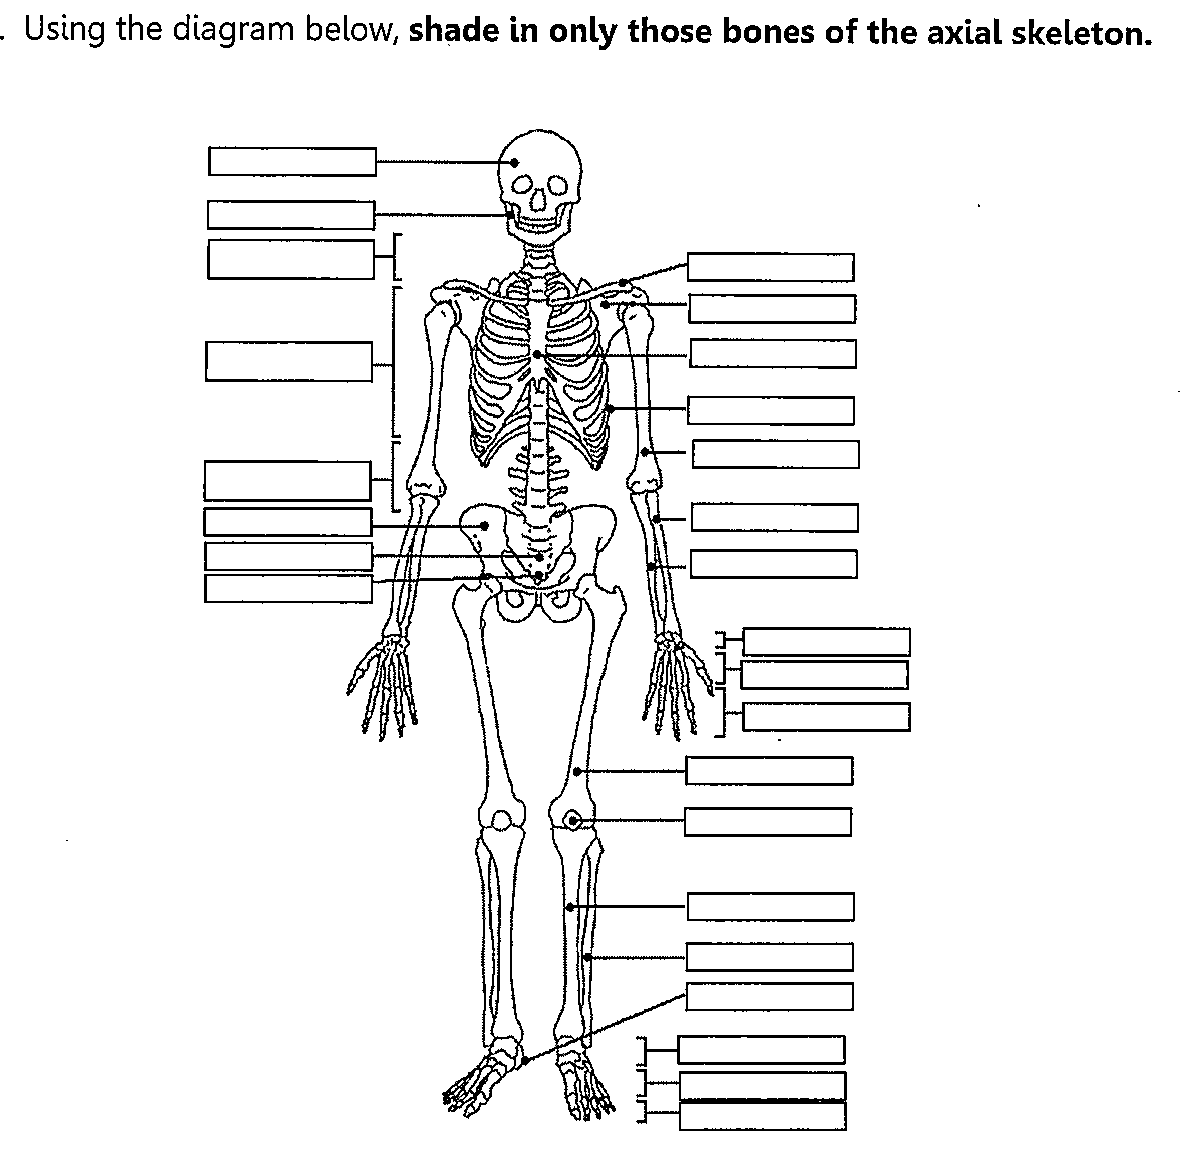 Axial Skeleton Worksheet Fill In The Blank